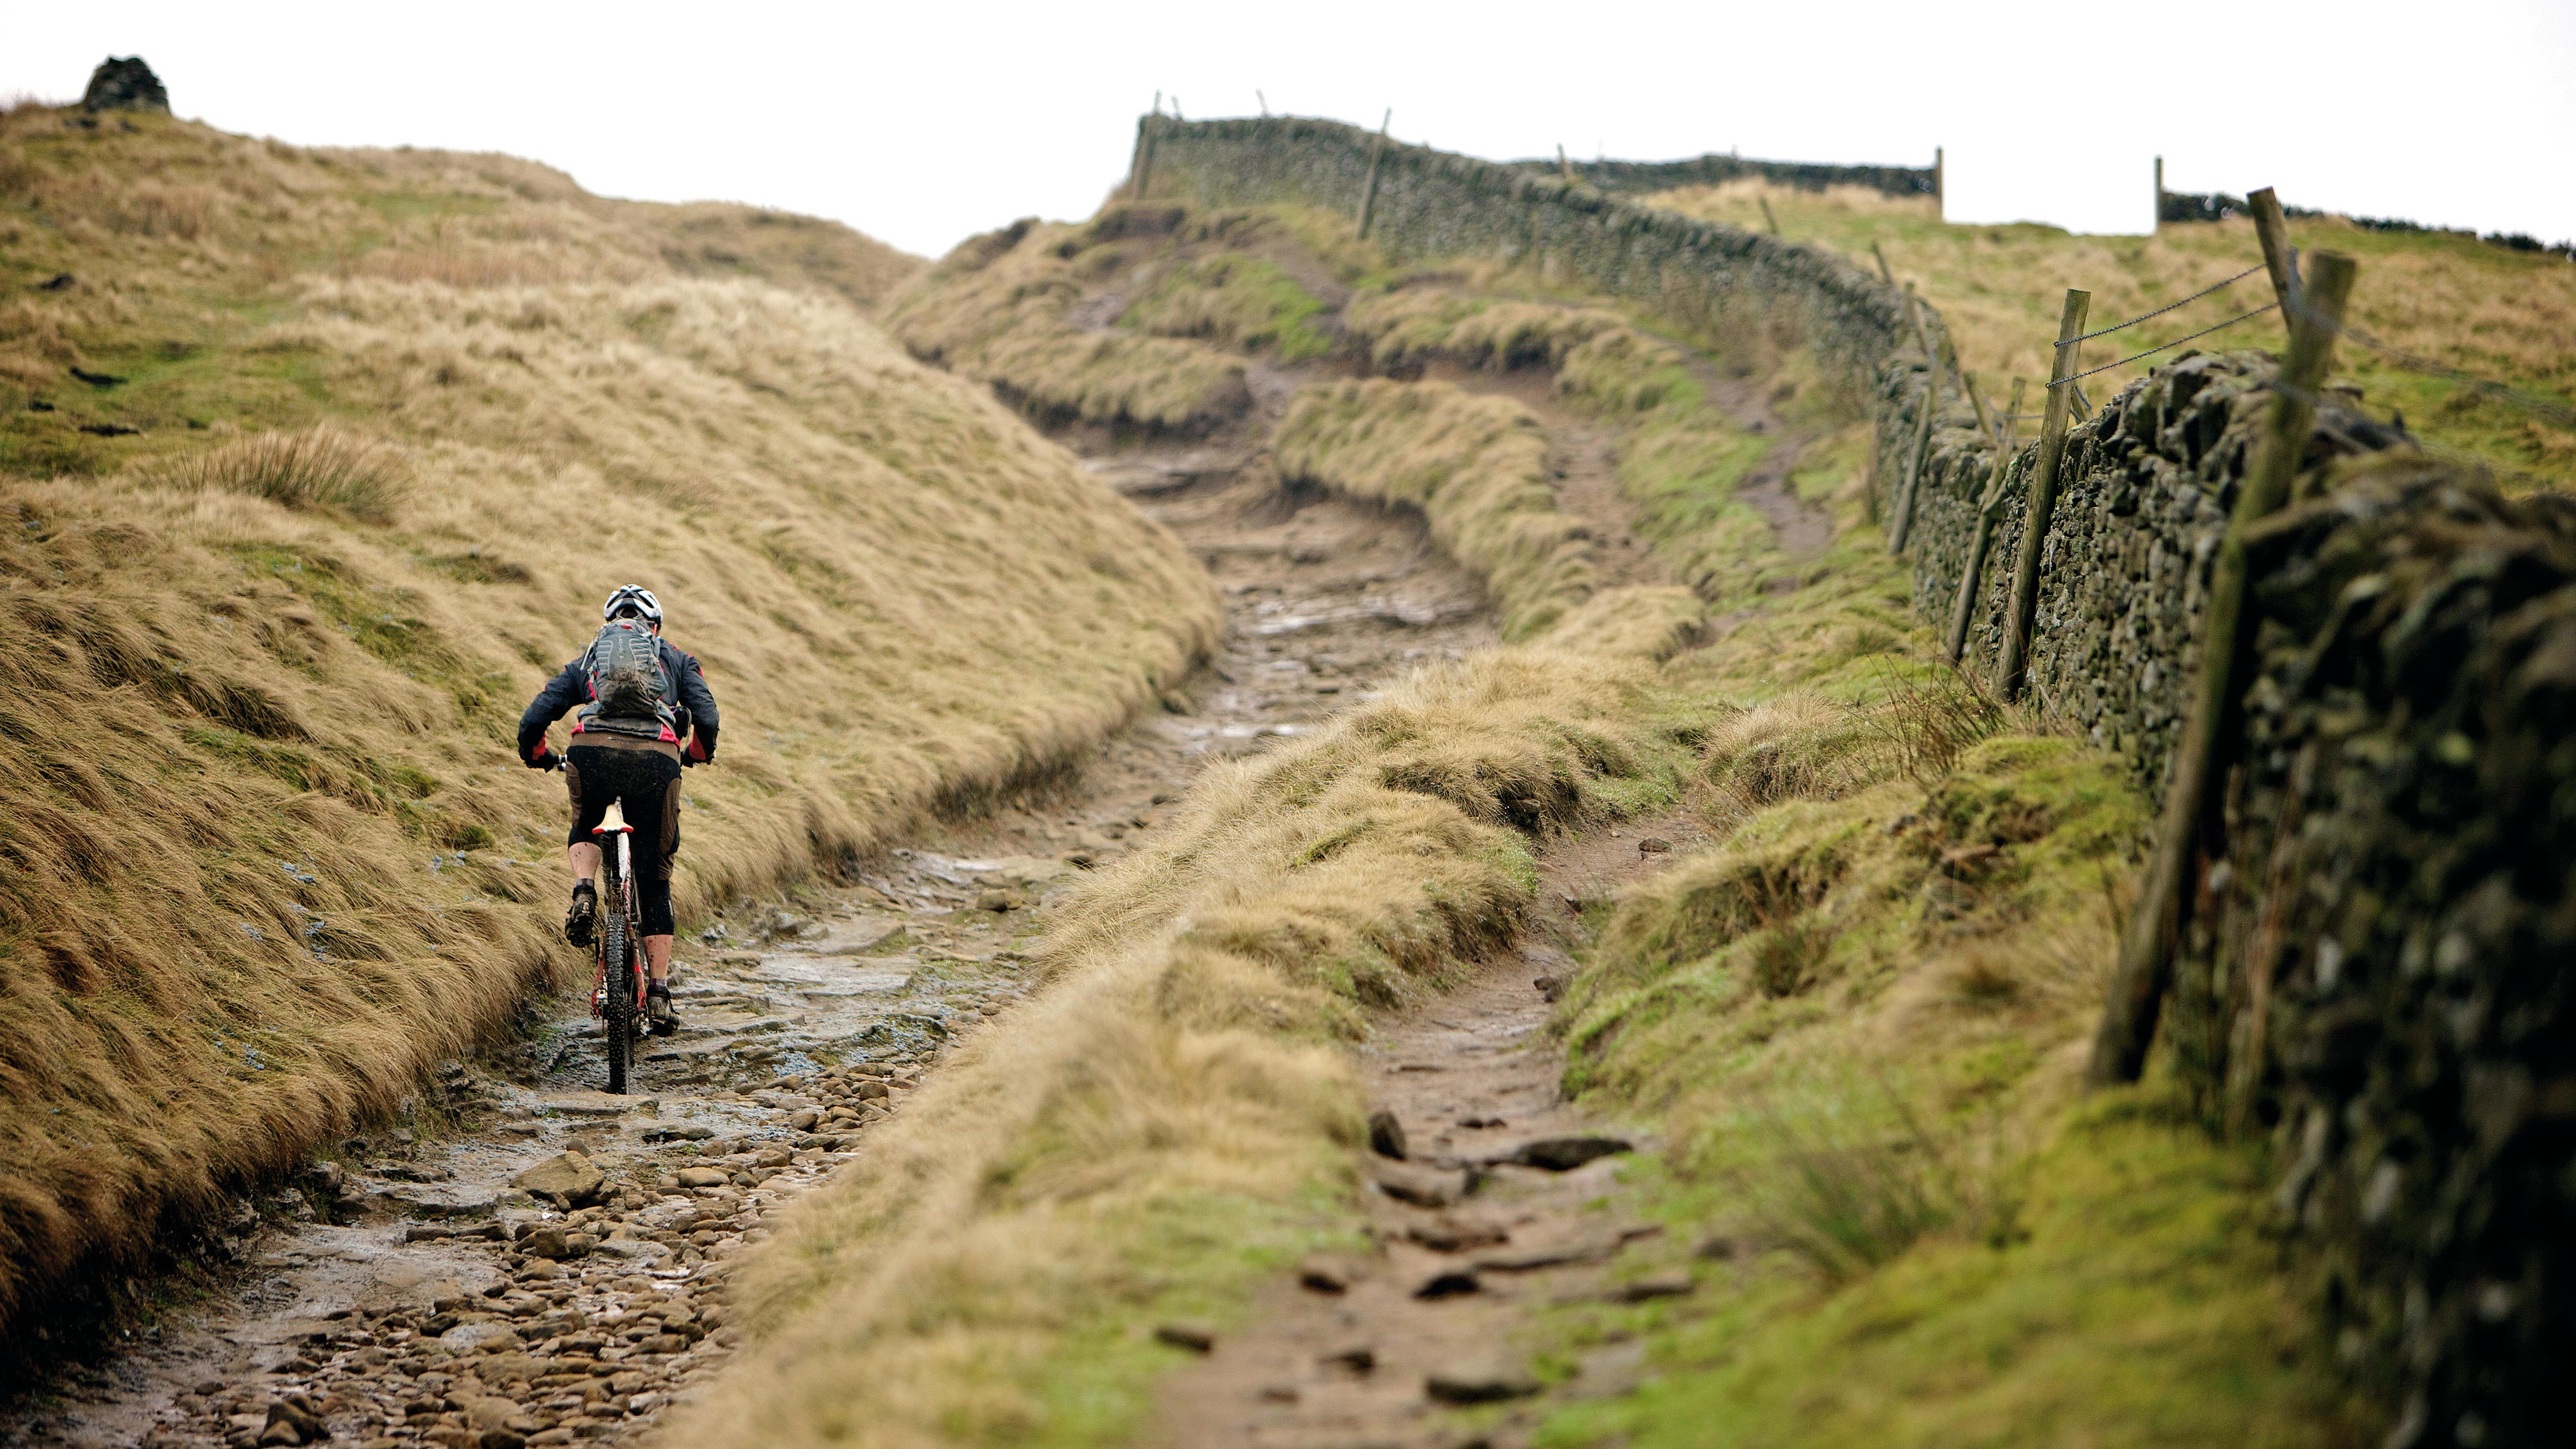 e7f3a84abaf Mountain Biking route in Hope Valley, Derbyshire, England, United Kingdom